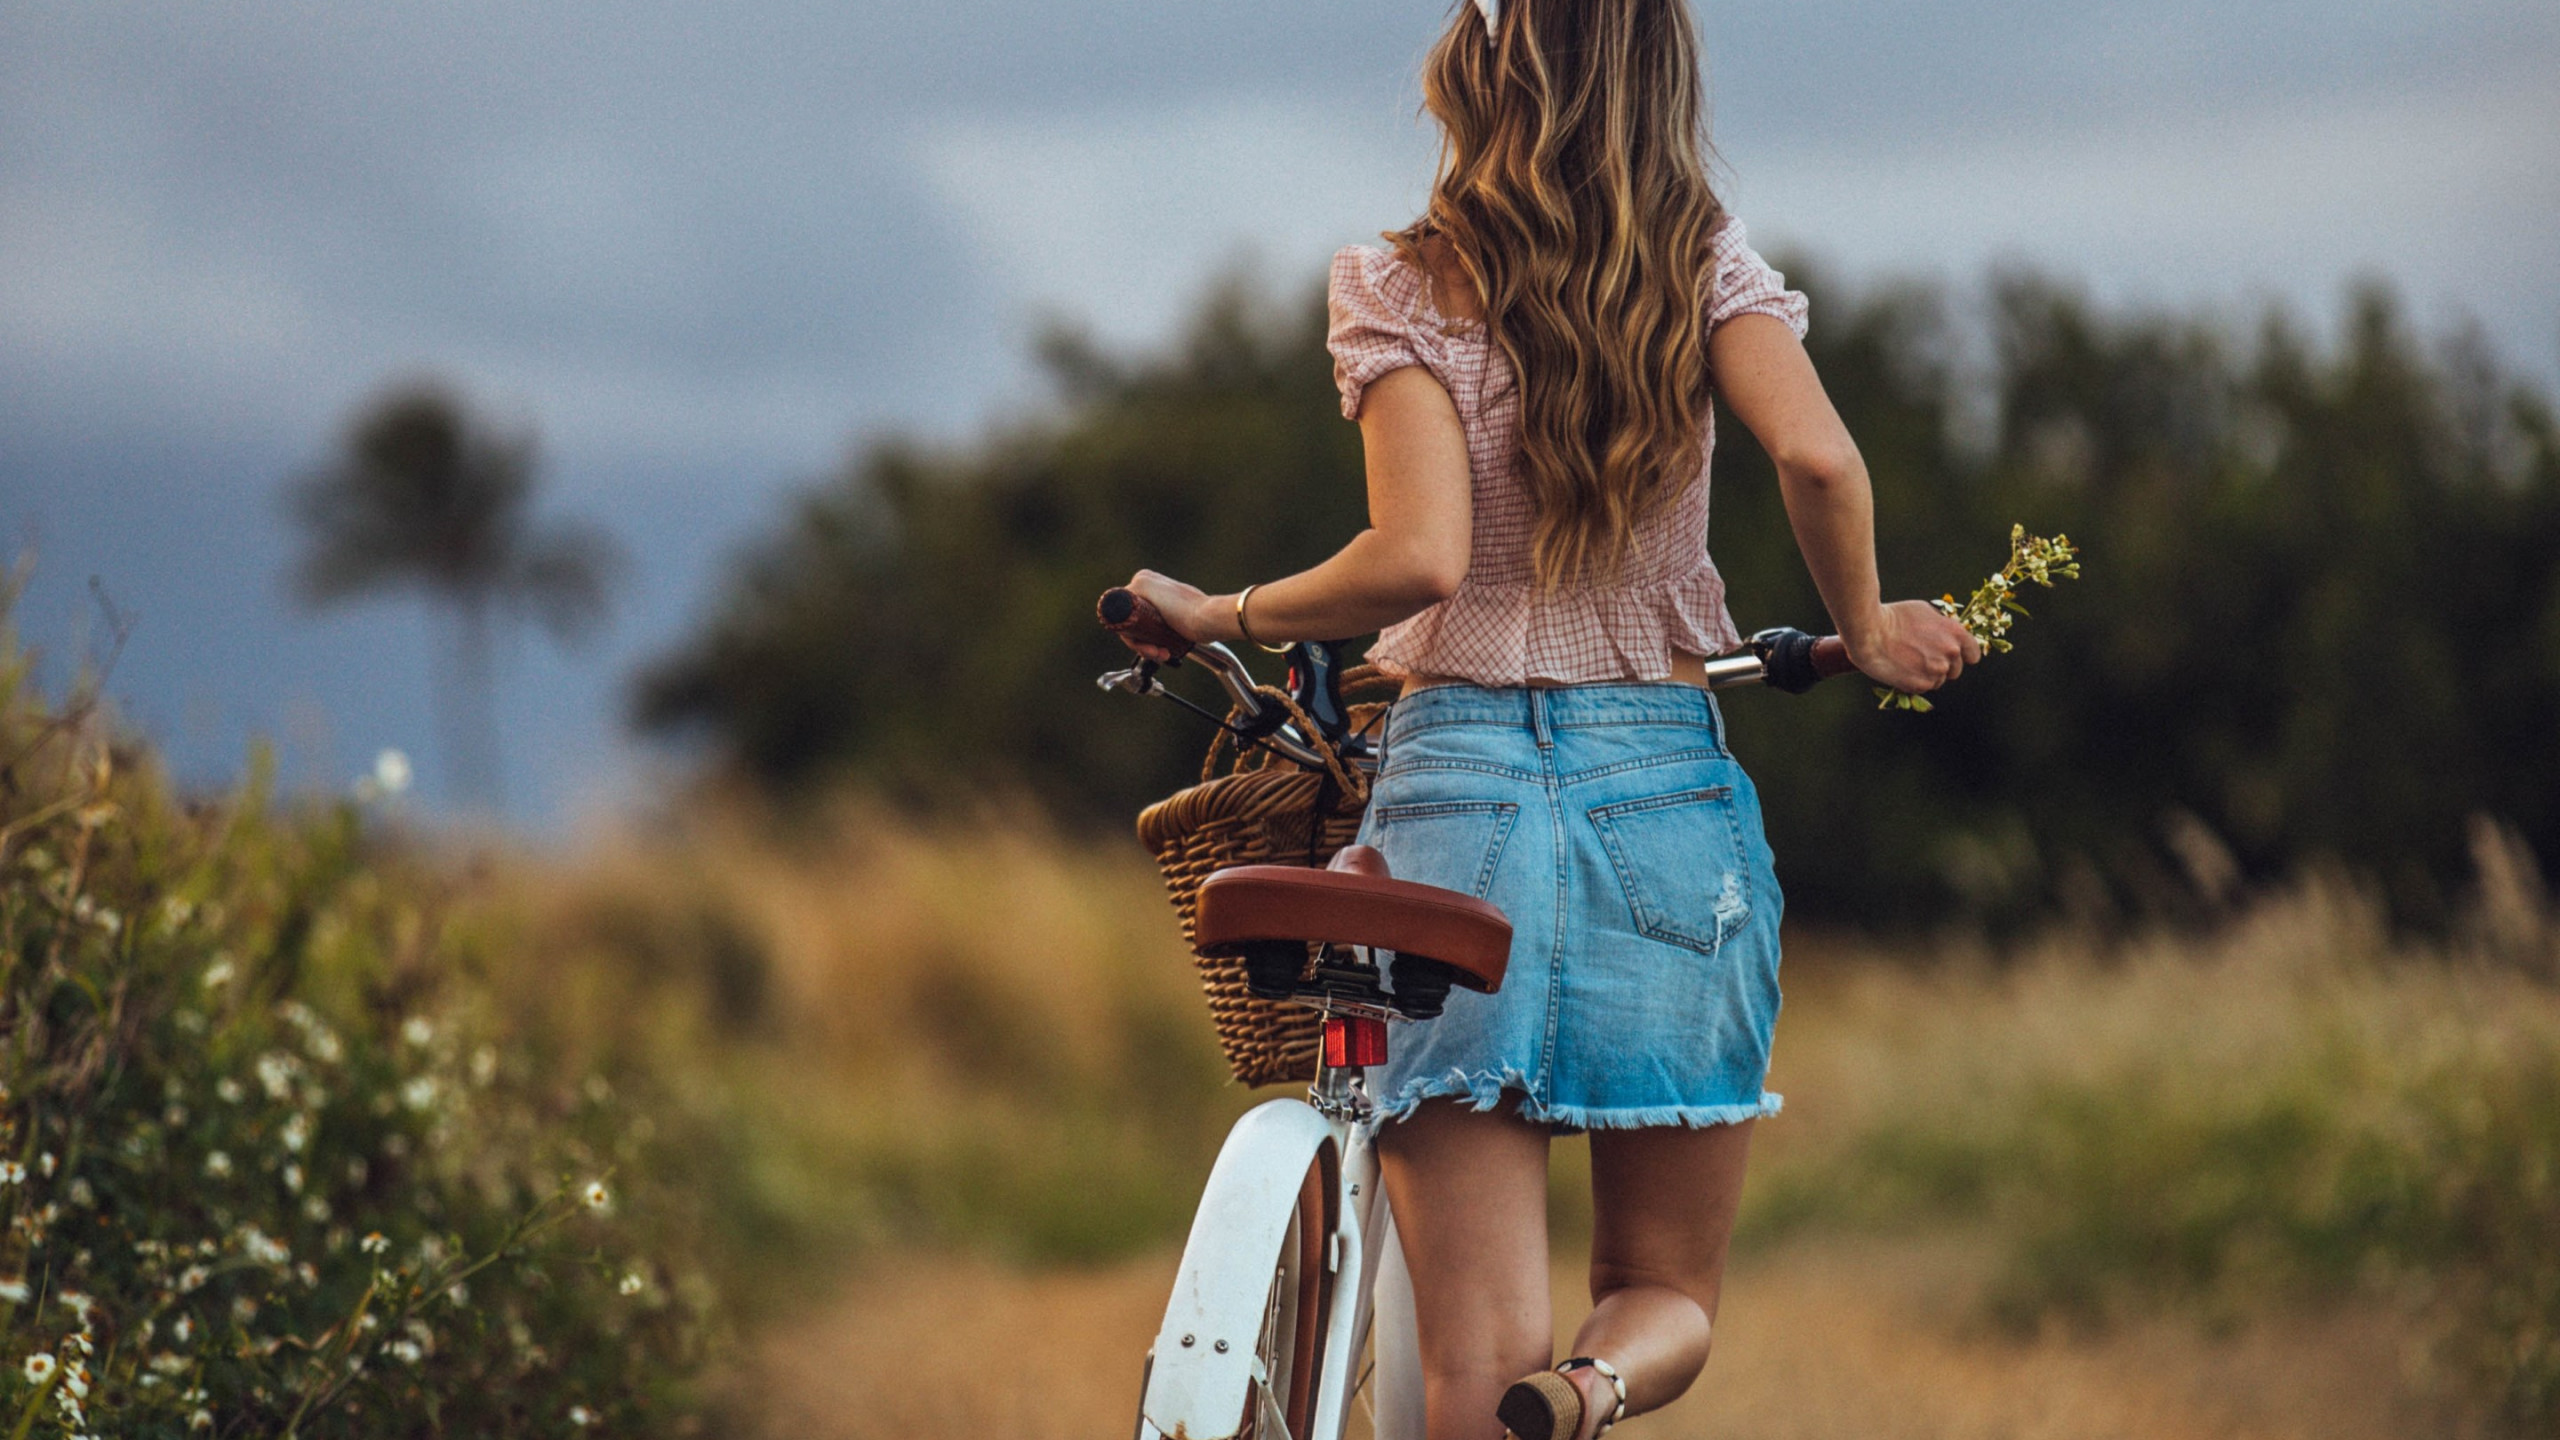 Lady with her retro bike wallpaper 2560x1440